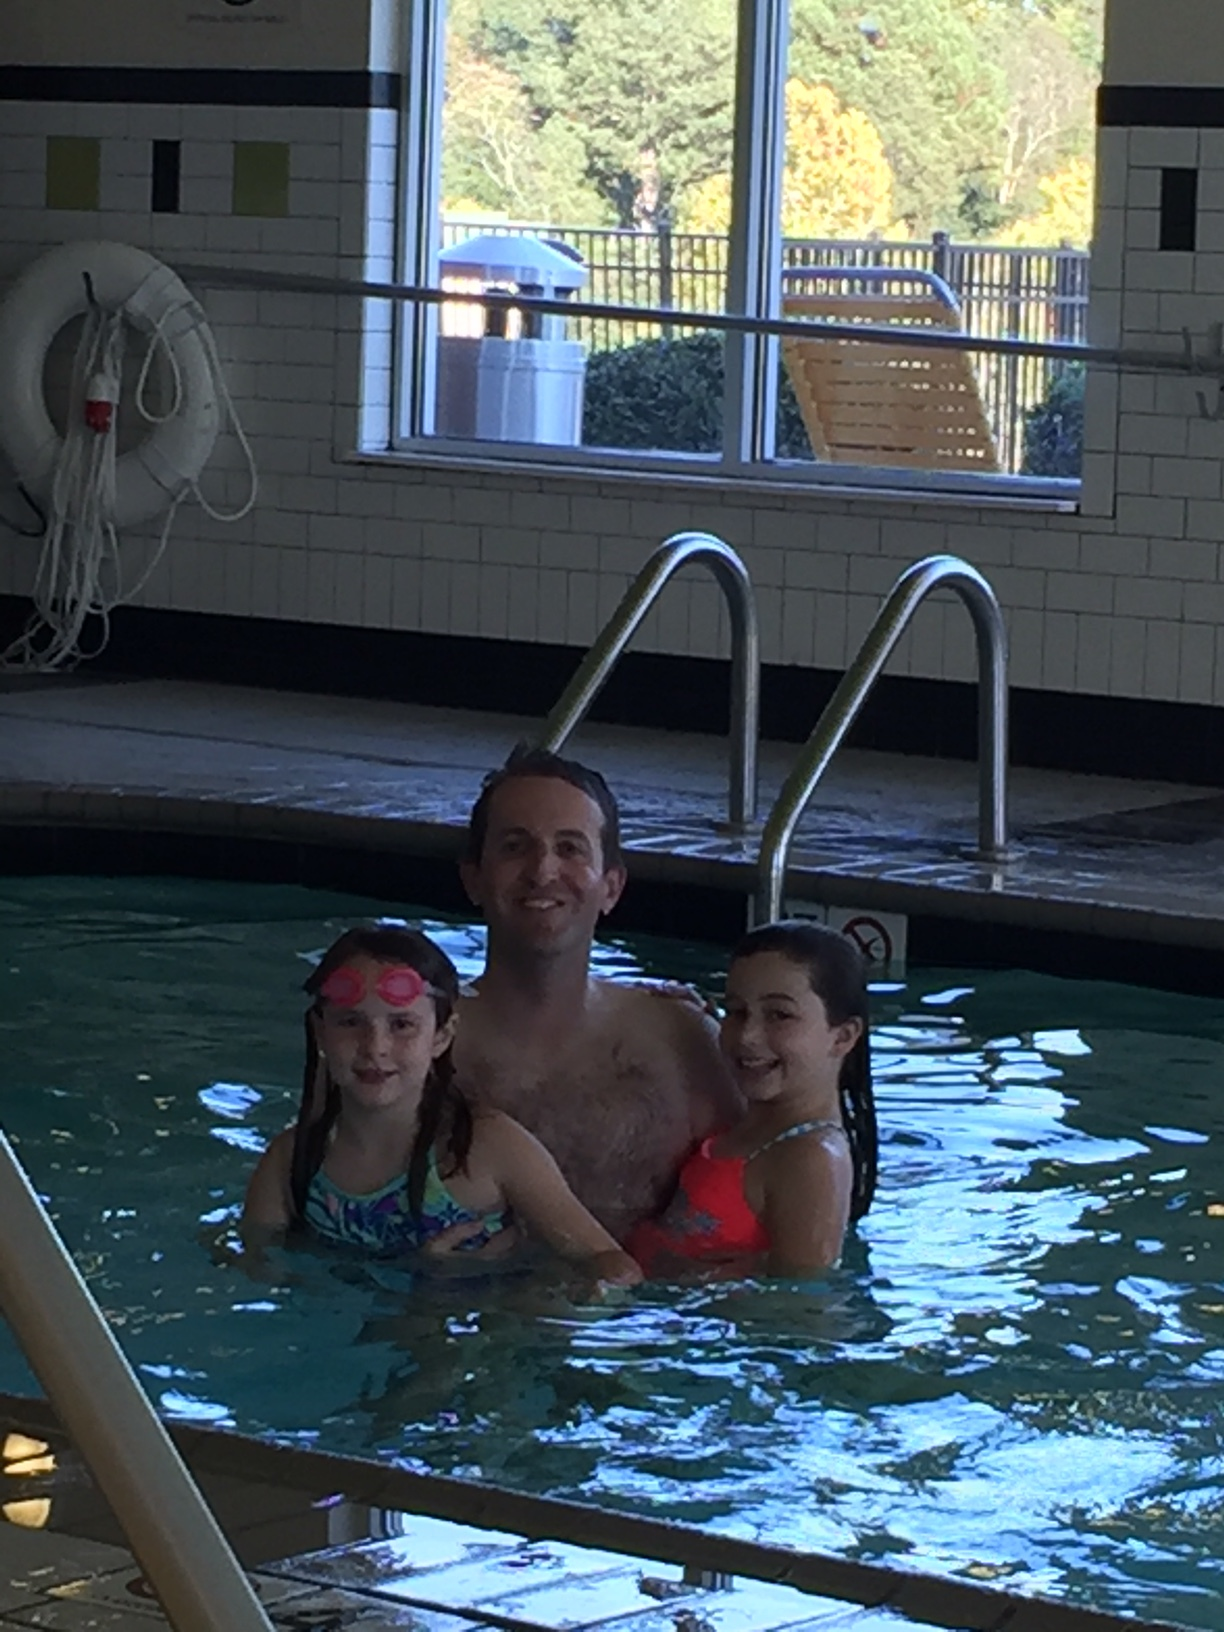 Taking advantage of the hotel pool! Mommy supervised from the side :)